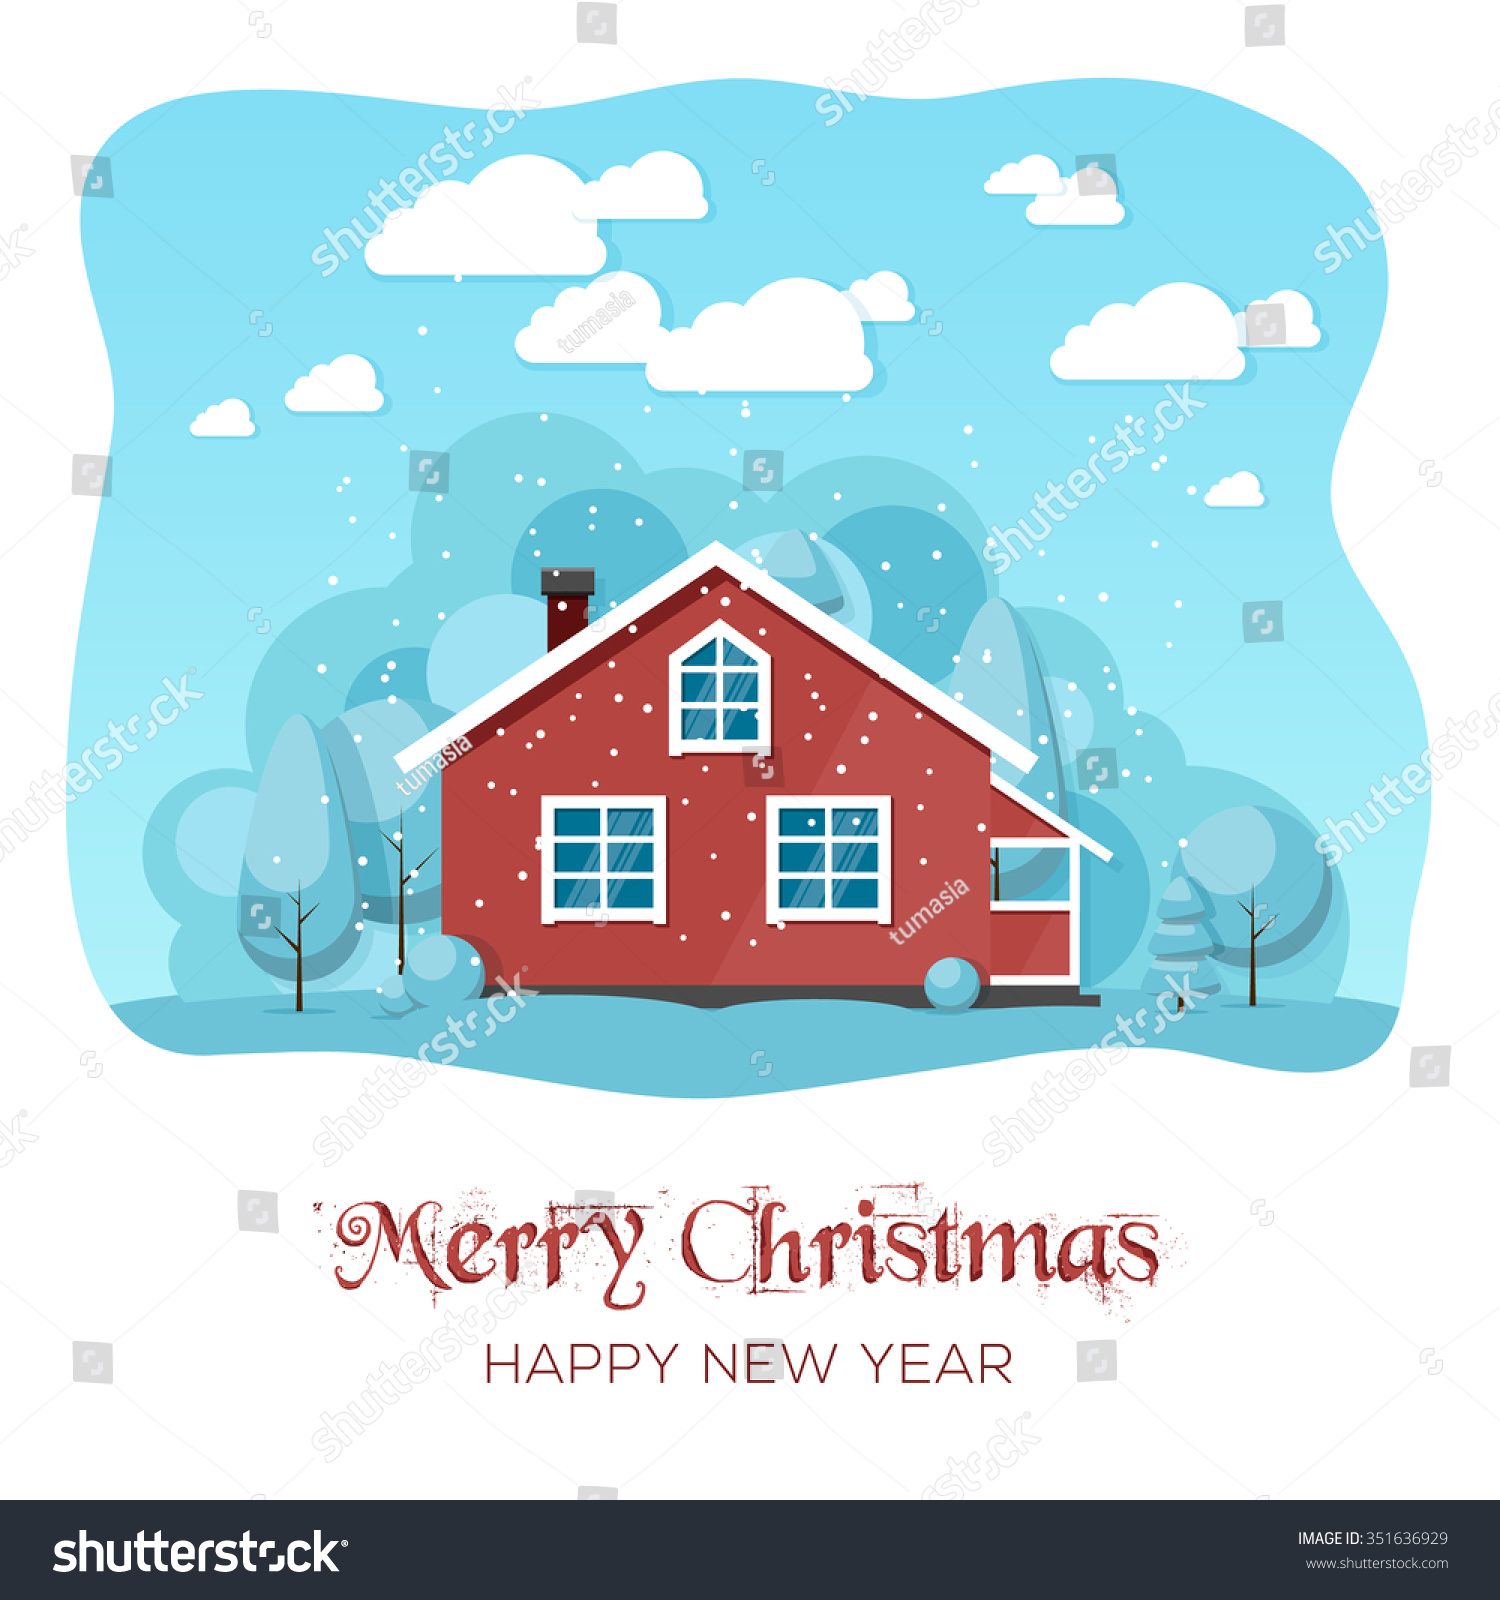 House Winter Forest Christmas Card Background Stock Vector Royalty